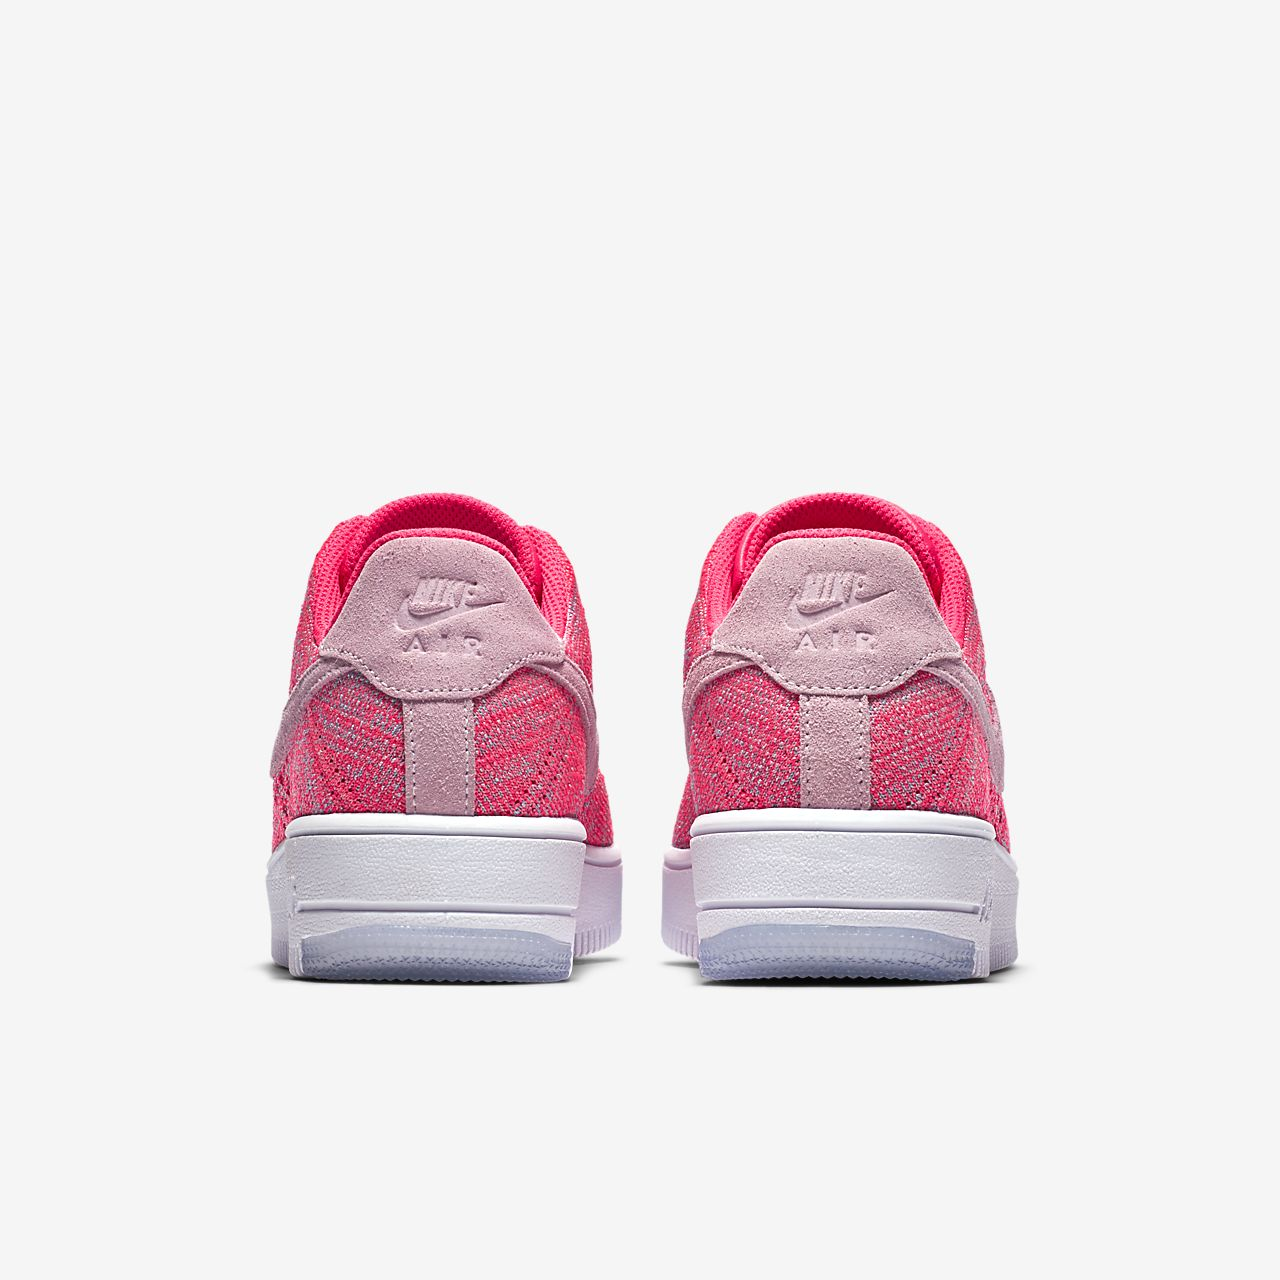 Nike Air Force 1 Flyknit Low Damenschuh - Pink